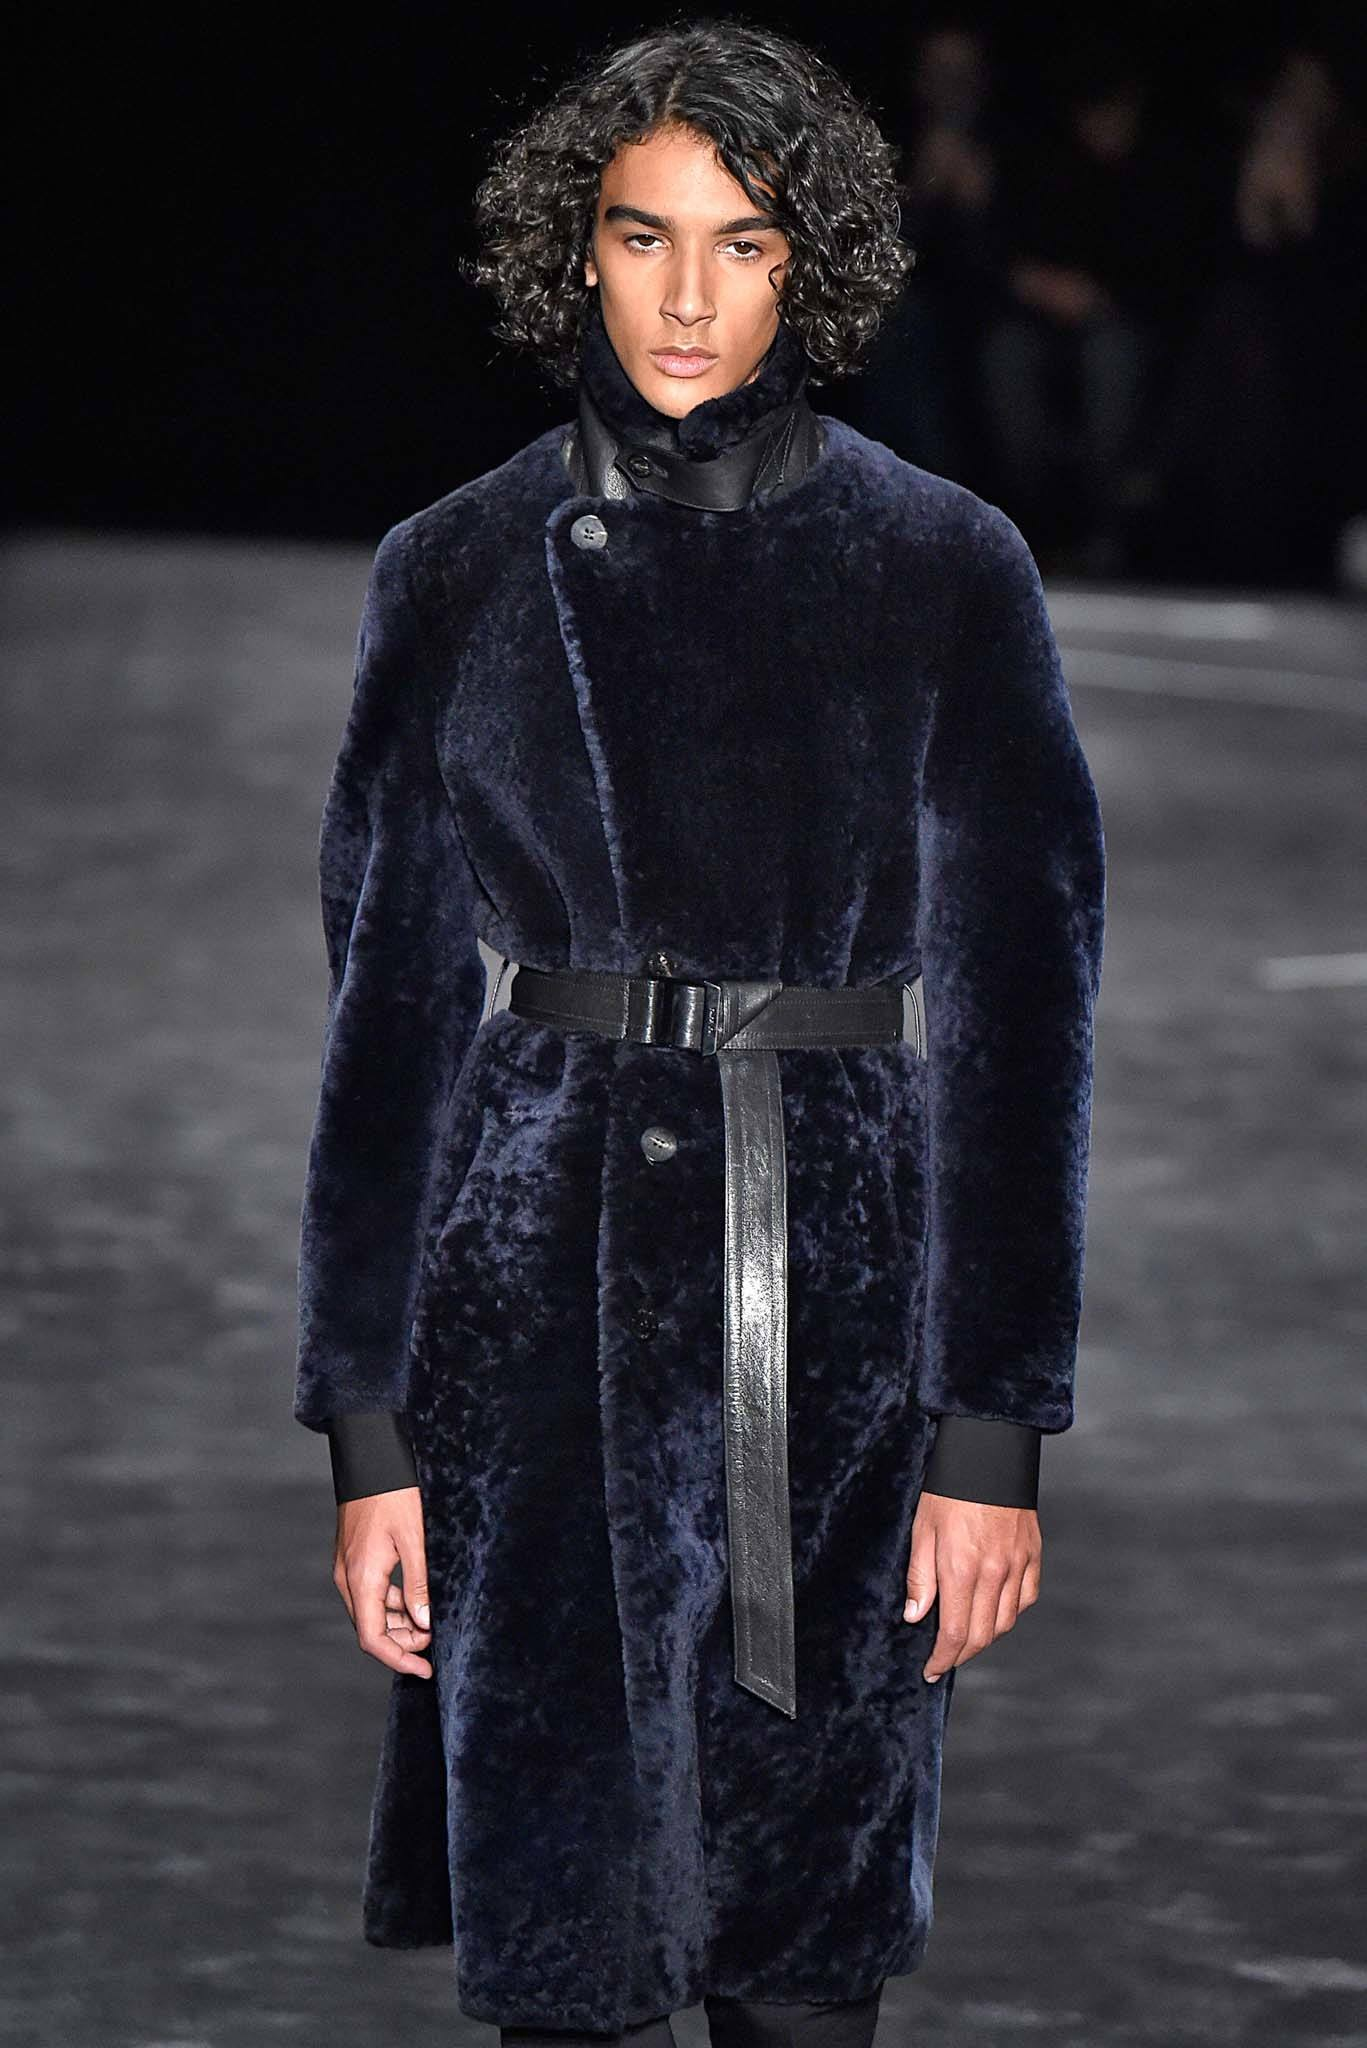 male model on catwalk with curly brown hair